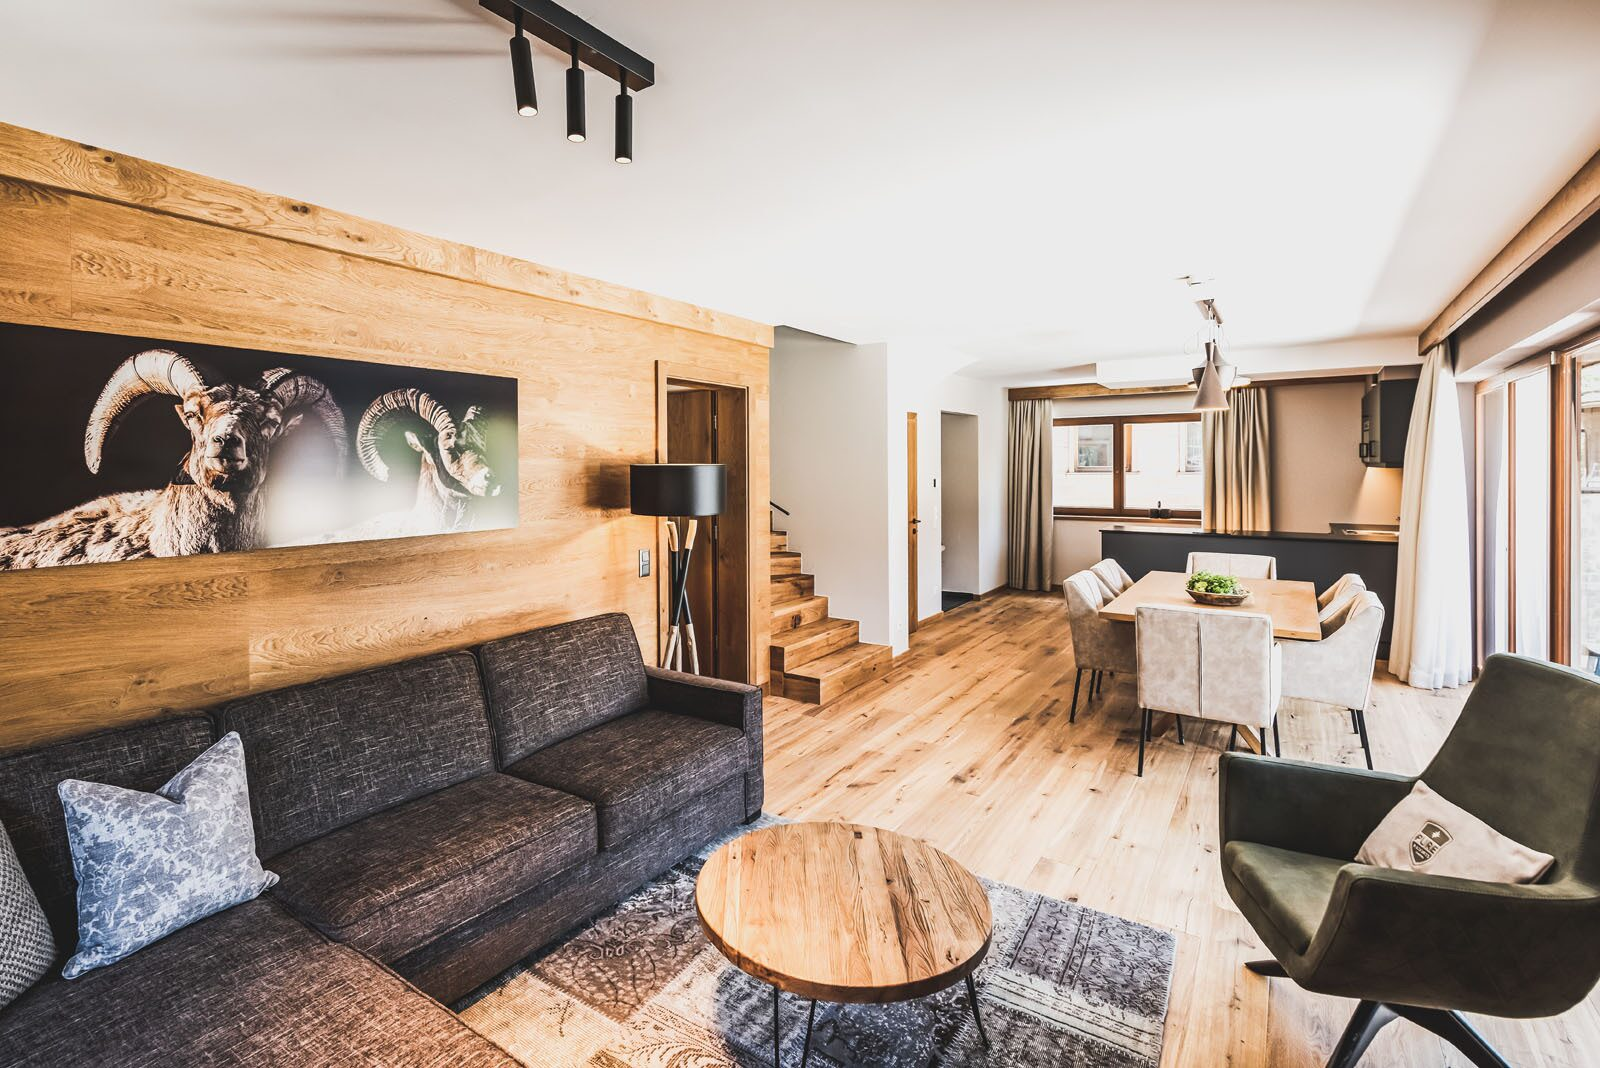 Chalet Plus | 8-10 Pers.